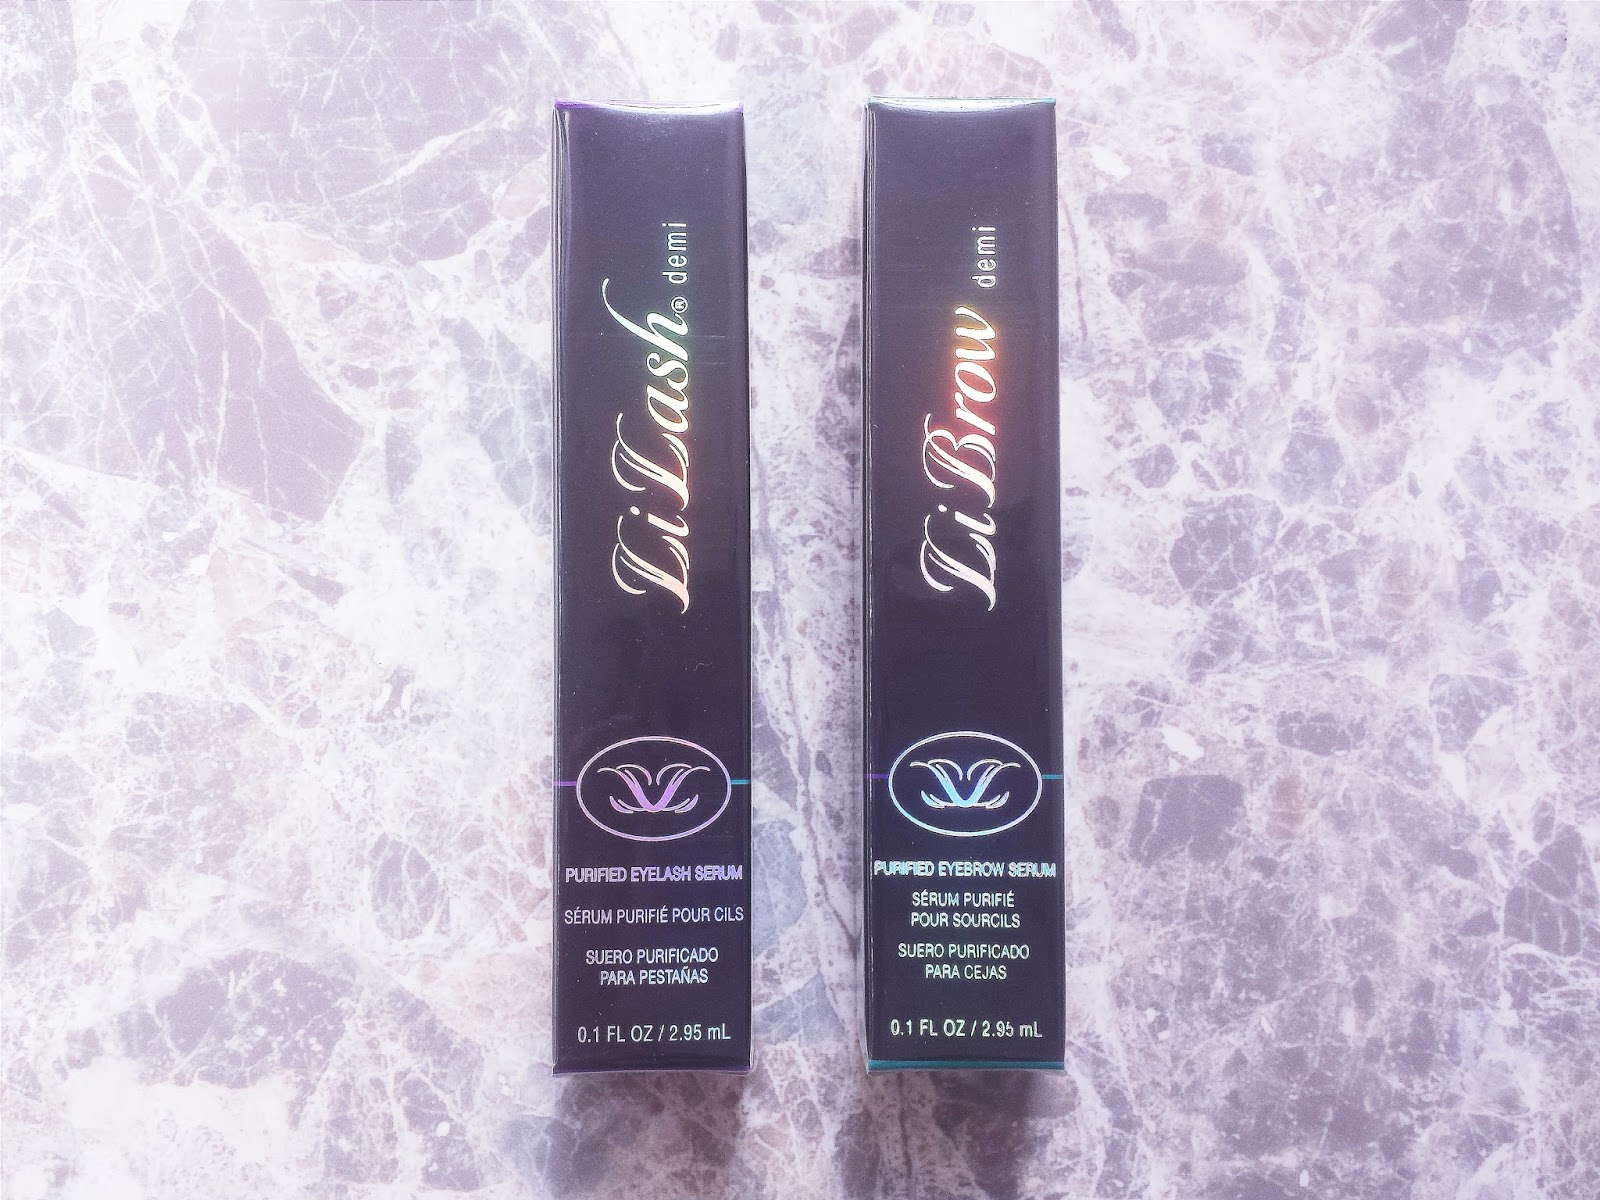 LiLash & LiBrow Serum